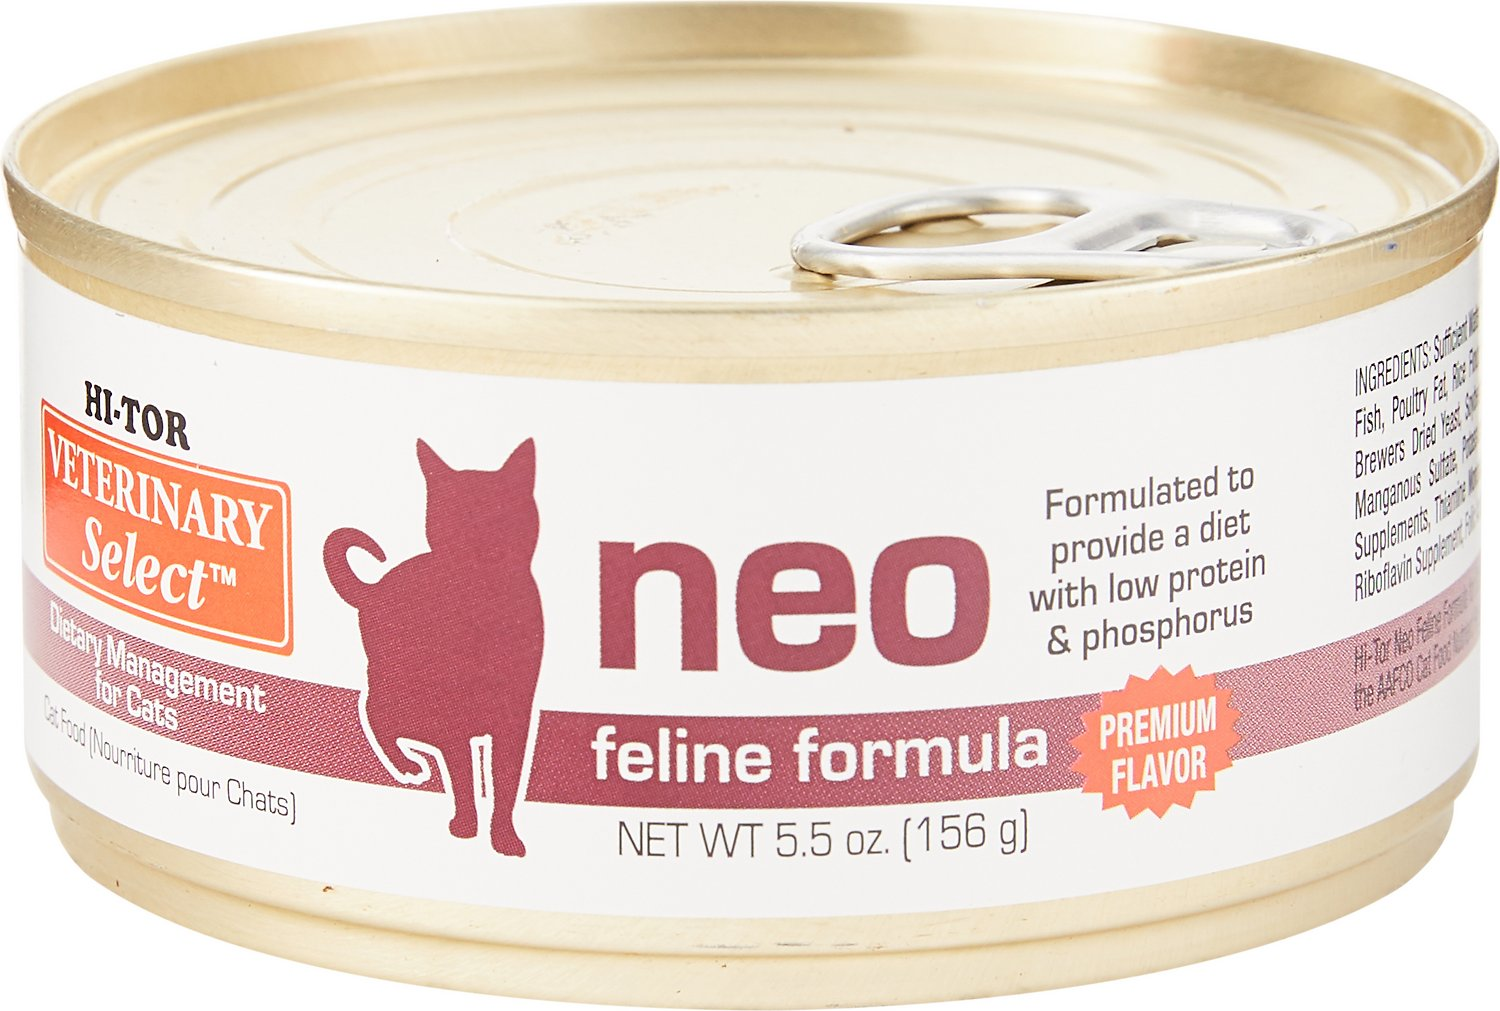 Food Low In Phosphorus For Cats